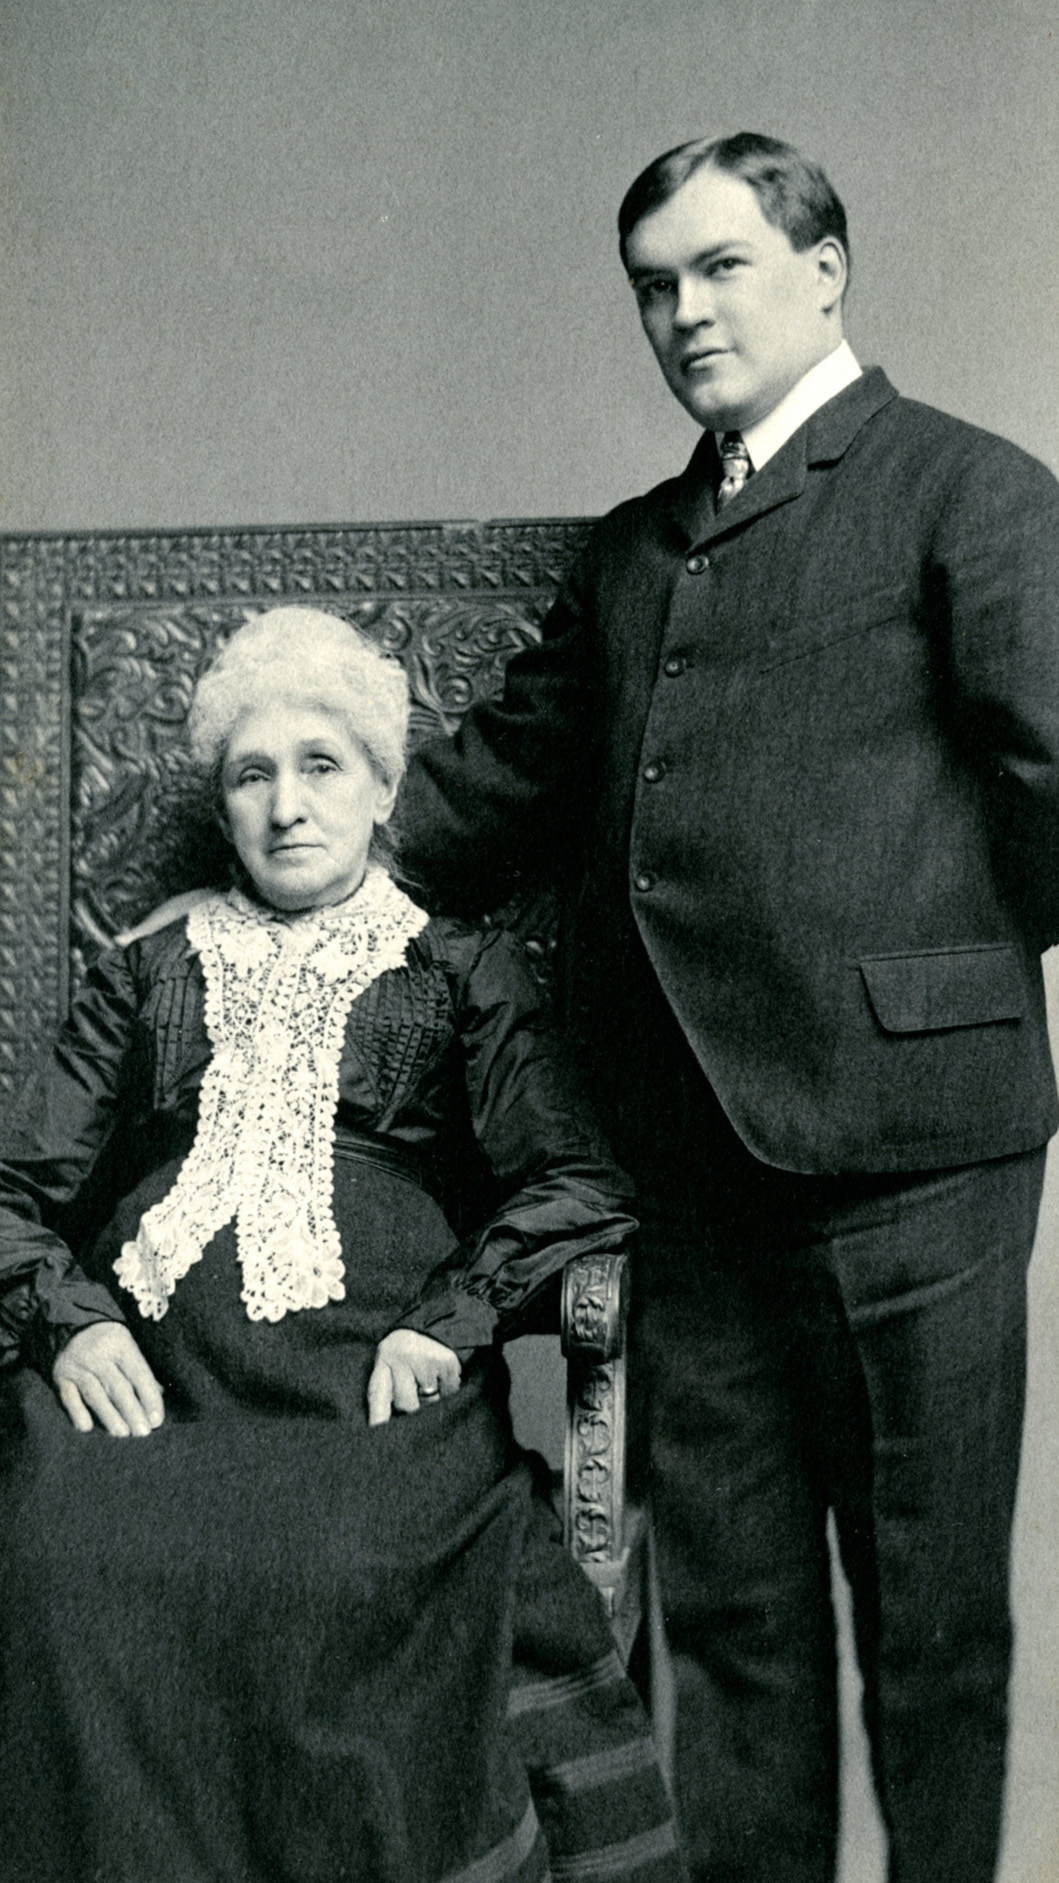 James Branch Cabell with grandmother_1904.jpg